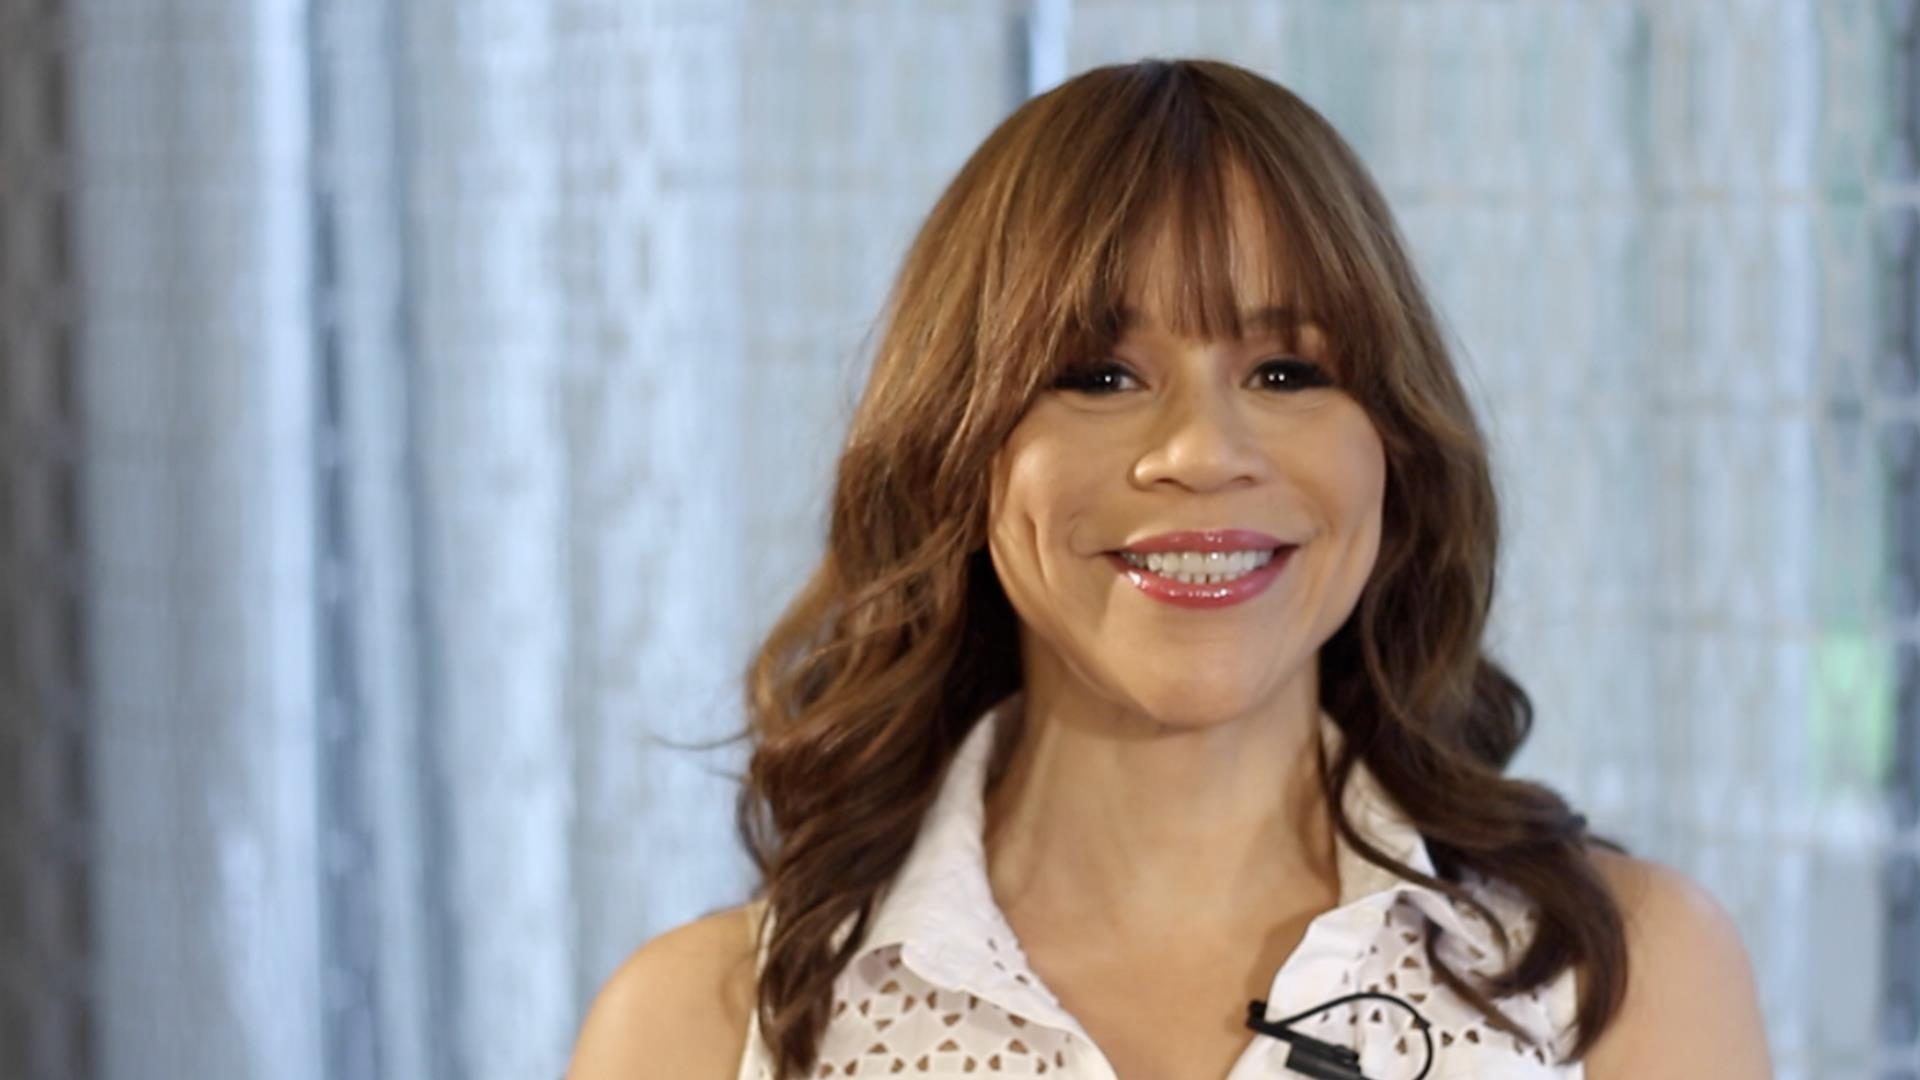 Rosie Perez wants to understand Trump backers